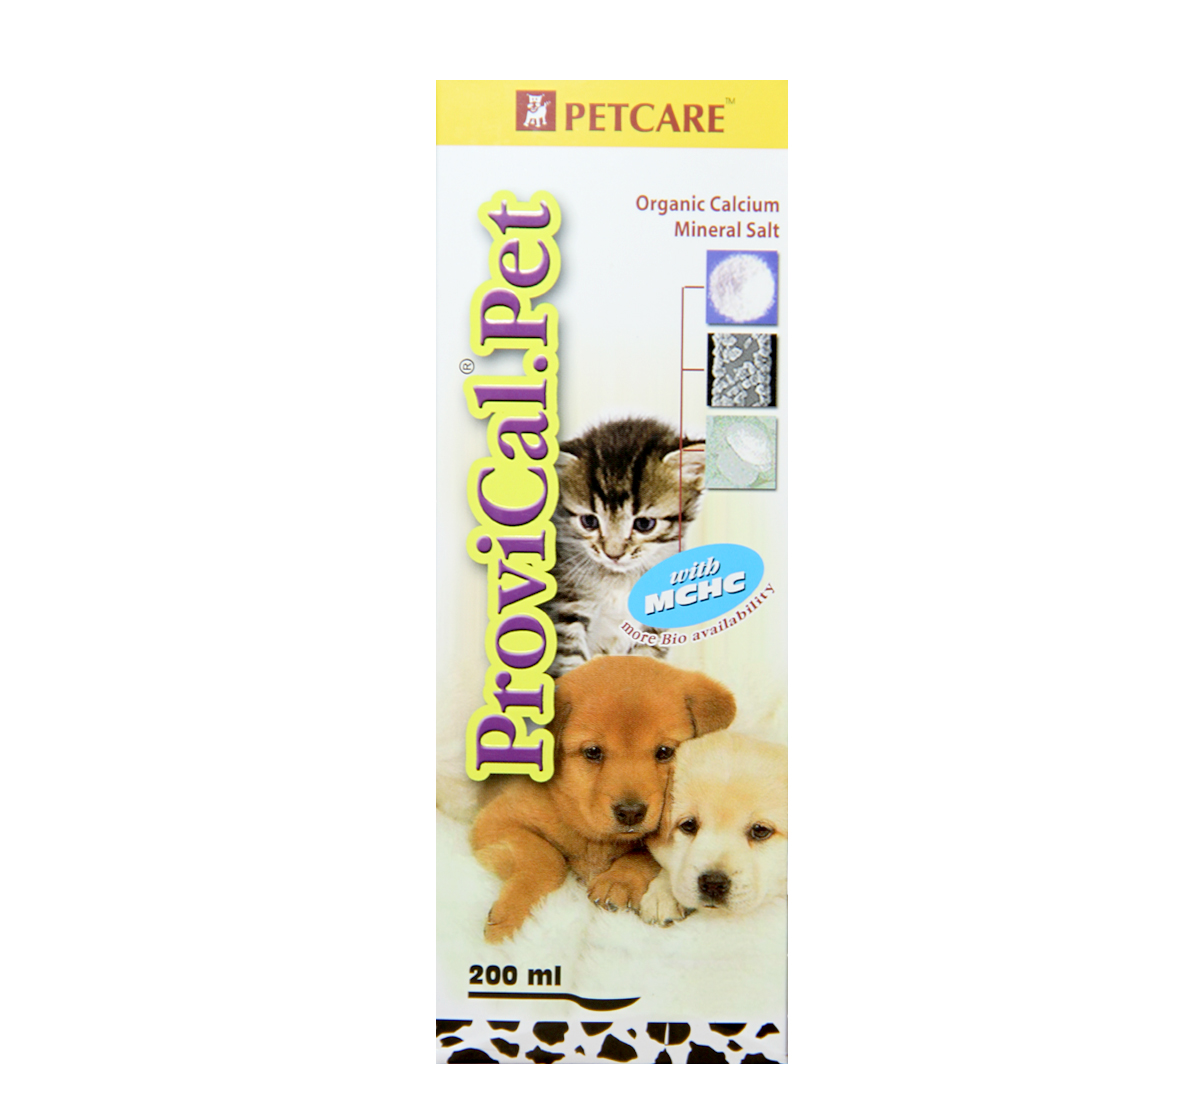 Provical Supplement For Dog - 200 ml